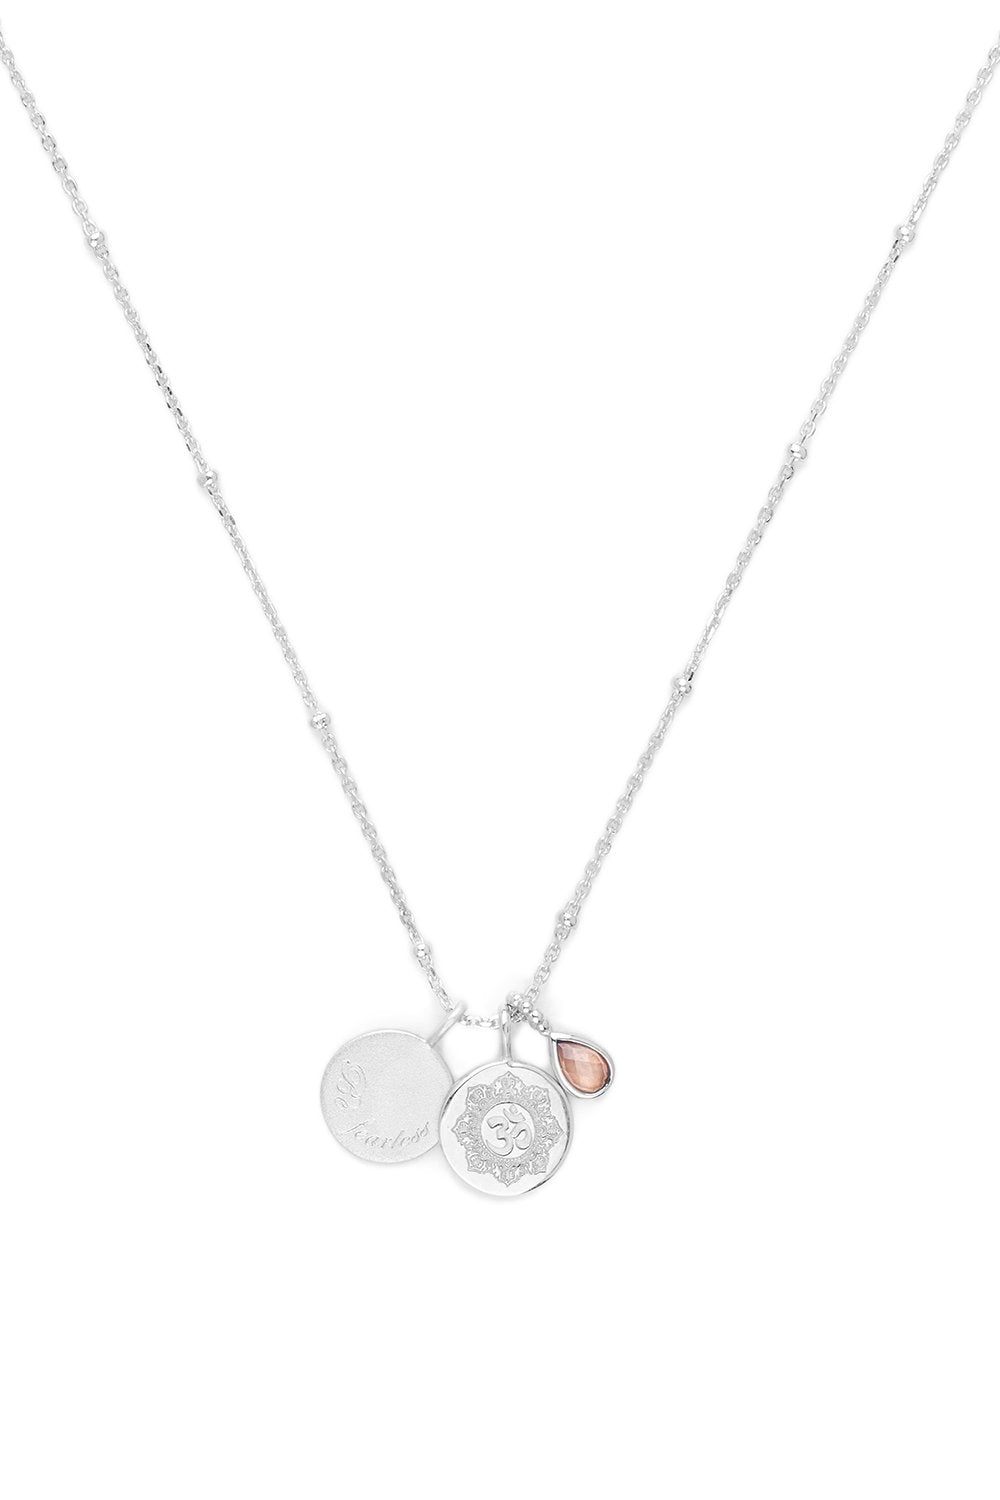 BY CHARLOTTE BEYOND SUN NECKLACE SILVER PLATED